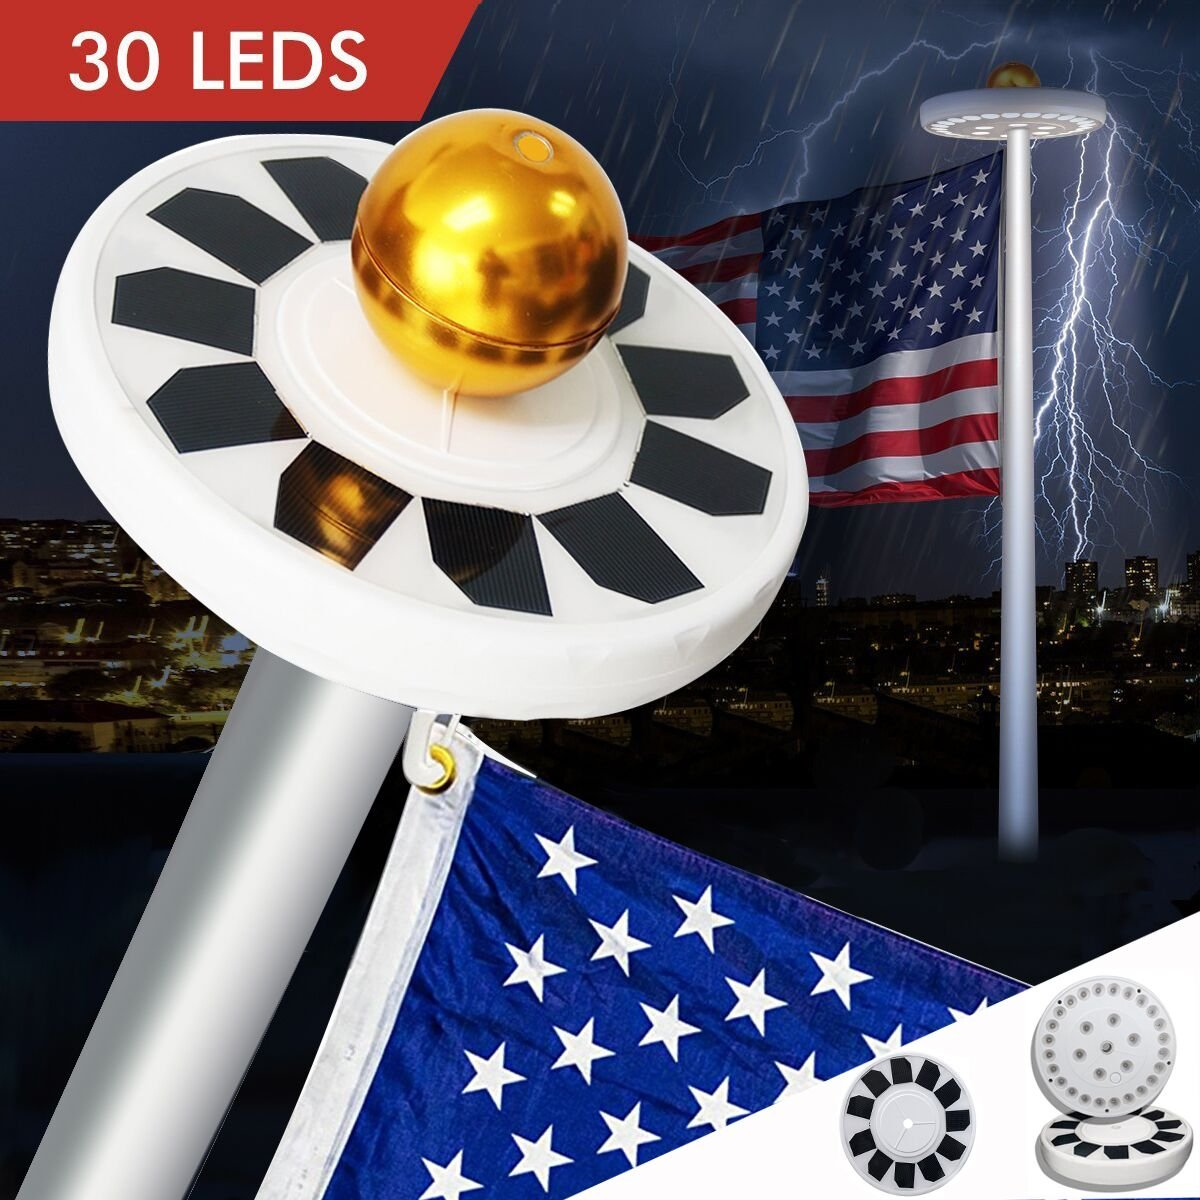 Mekar 30 LED Solar Flag Pole Lights Flagpole Downlight Long Lasting Lighting Night light for 15 to 25 Ft Flag Pole by Mekar (Image #1)